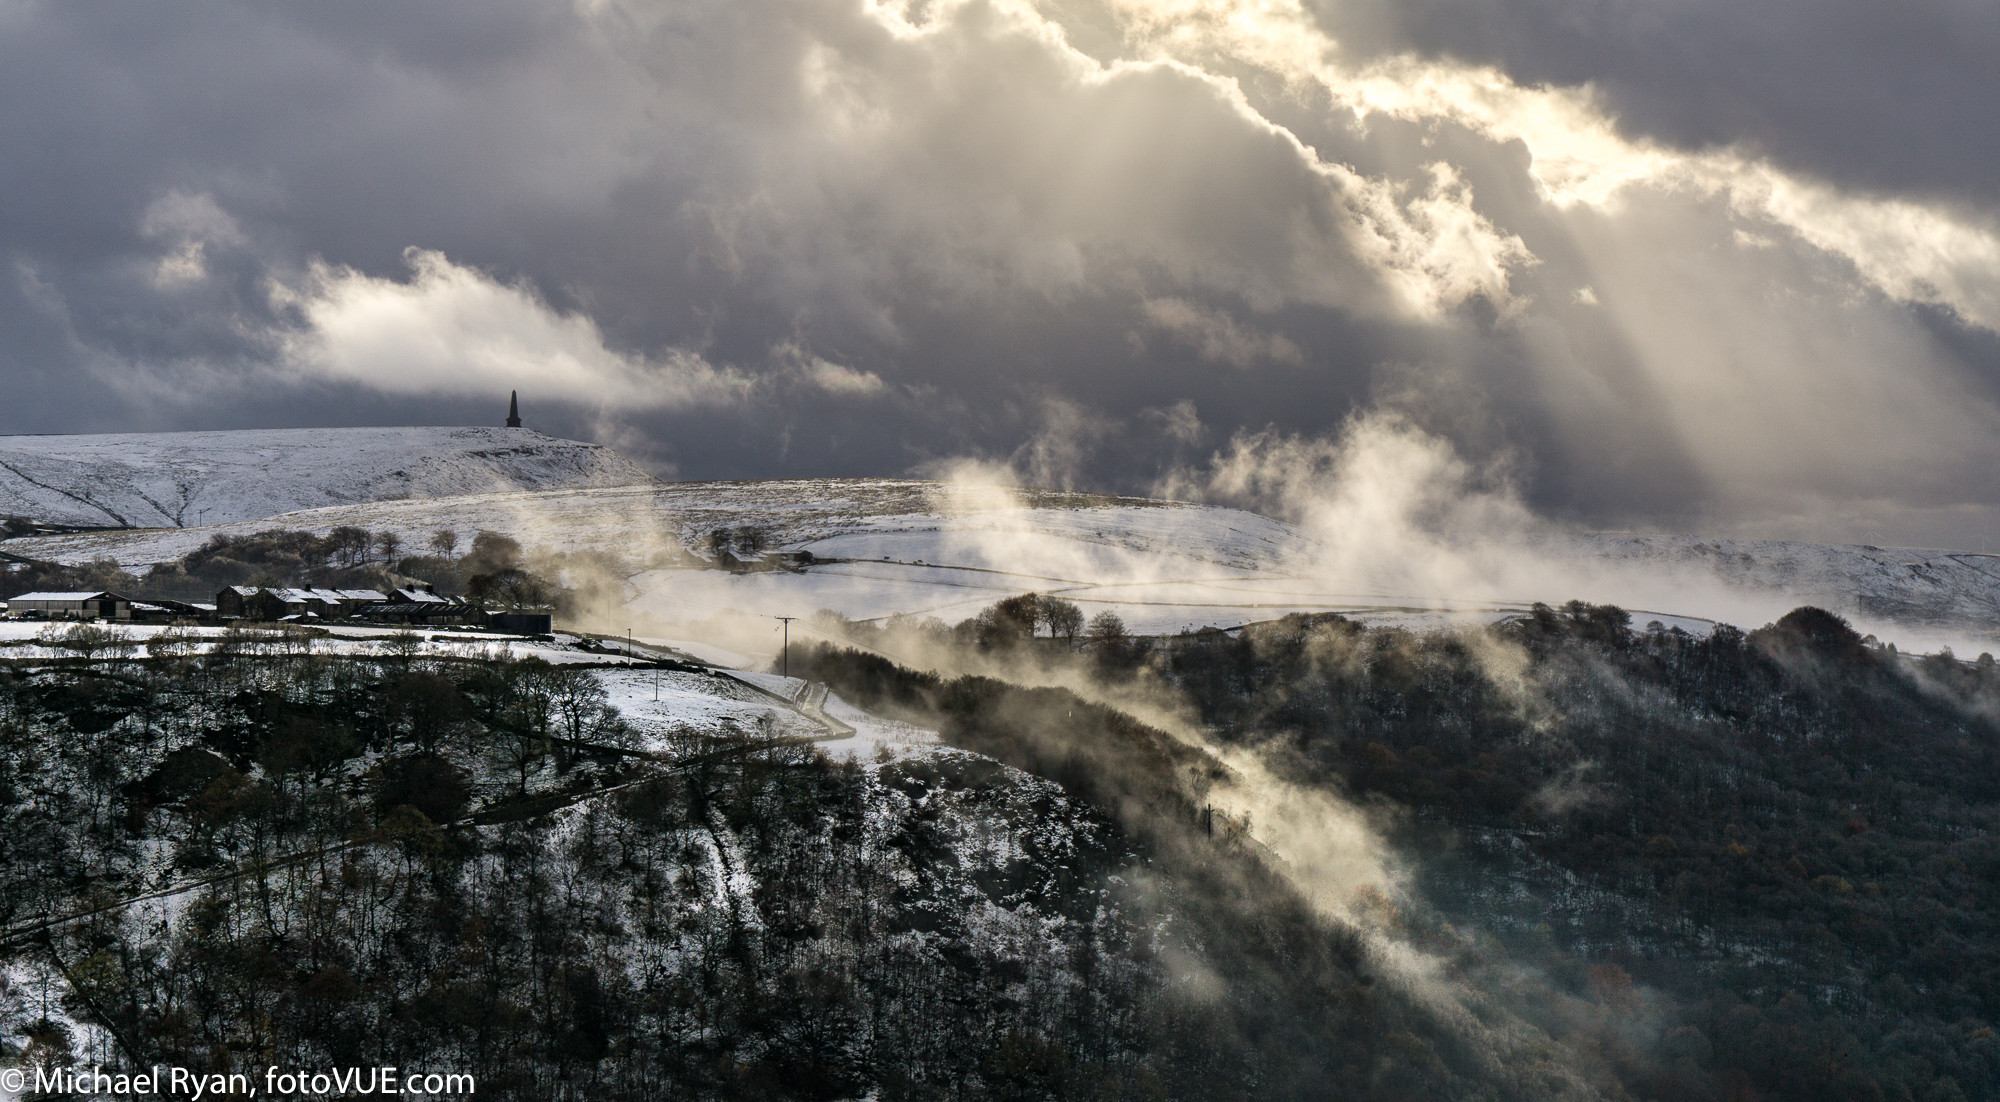 Stoodley Pike. Sony A6000, Sony E 16-55mm f/4 at 25mm, ISO 100, 1/60s at f/9.5. Handheld. November © Mick Ryan